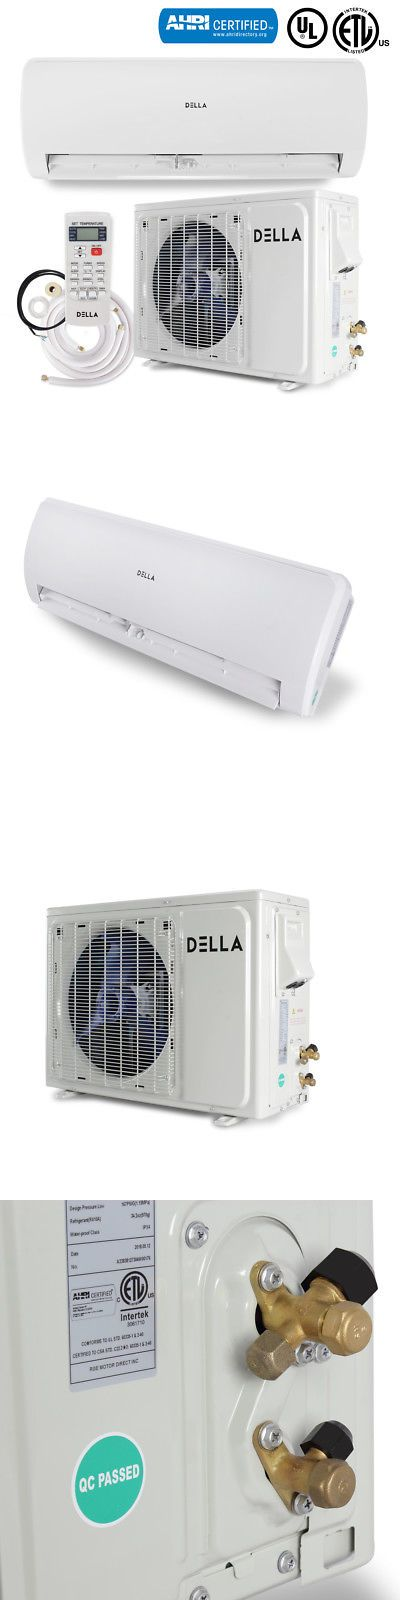 Ductless 12000 Btu 230v Mini Split Air Conditioning Inverter W Heat Pump System Wall Mounted Air Conditioner Heat Pump System Heat Pump